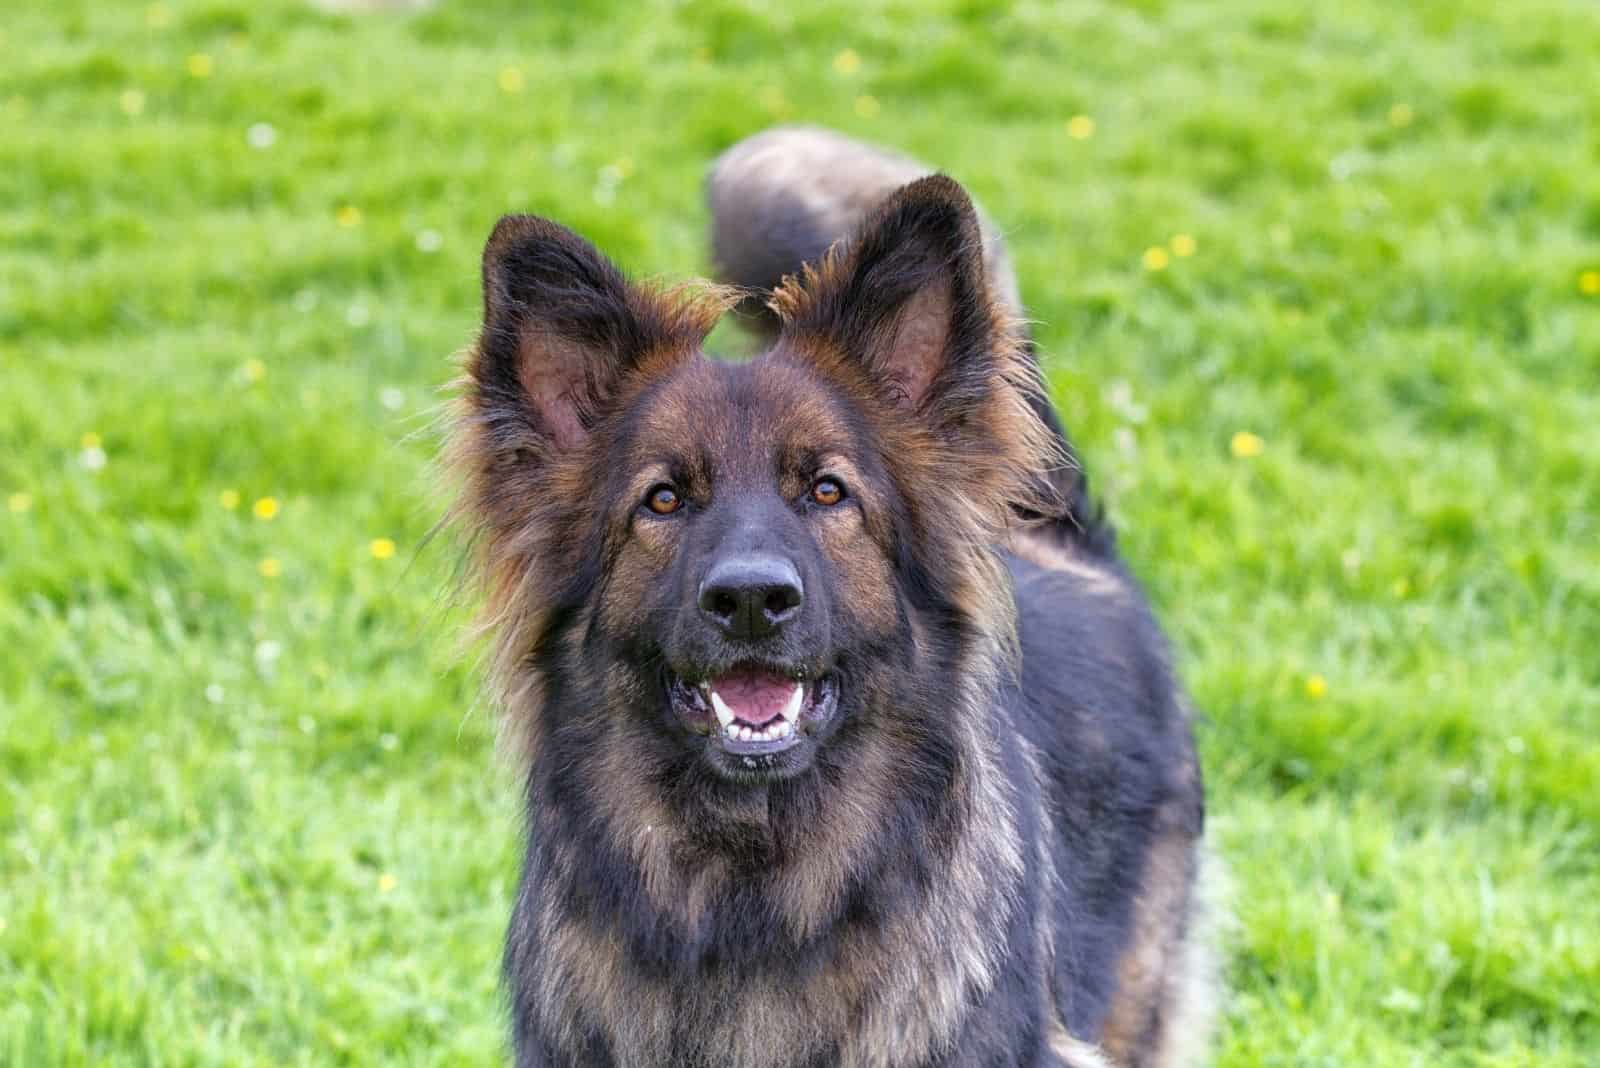 excited german shepherd barking and looking at the camera